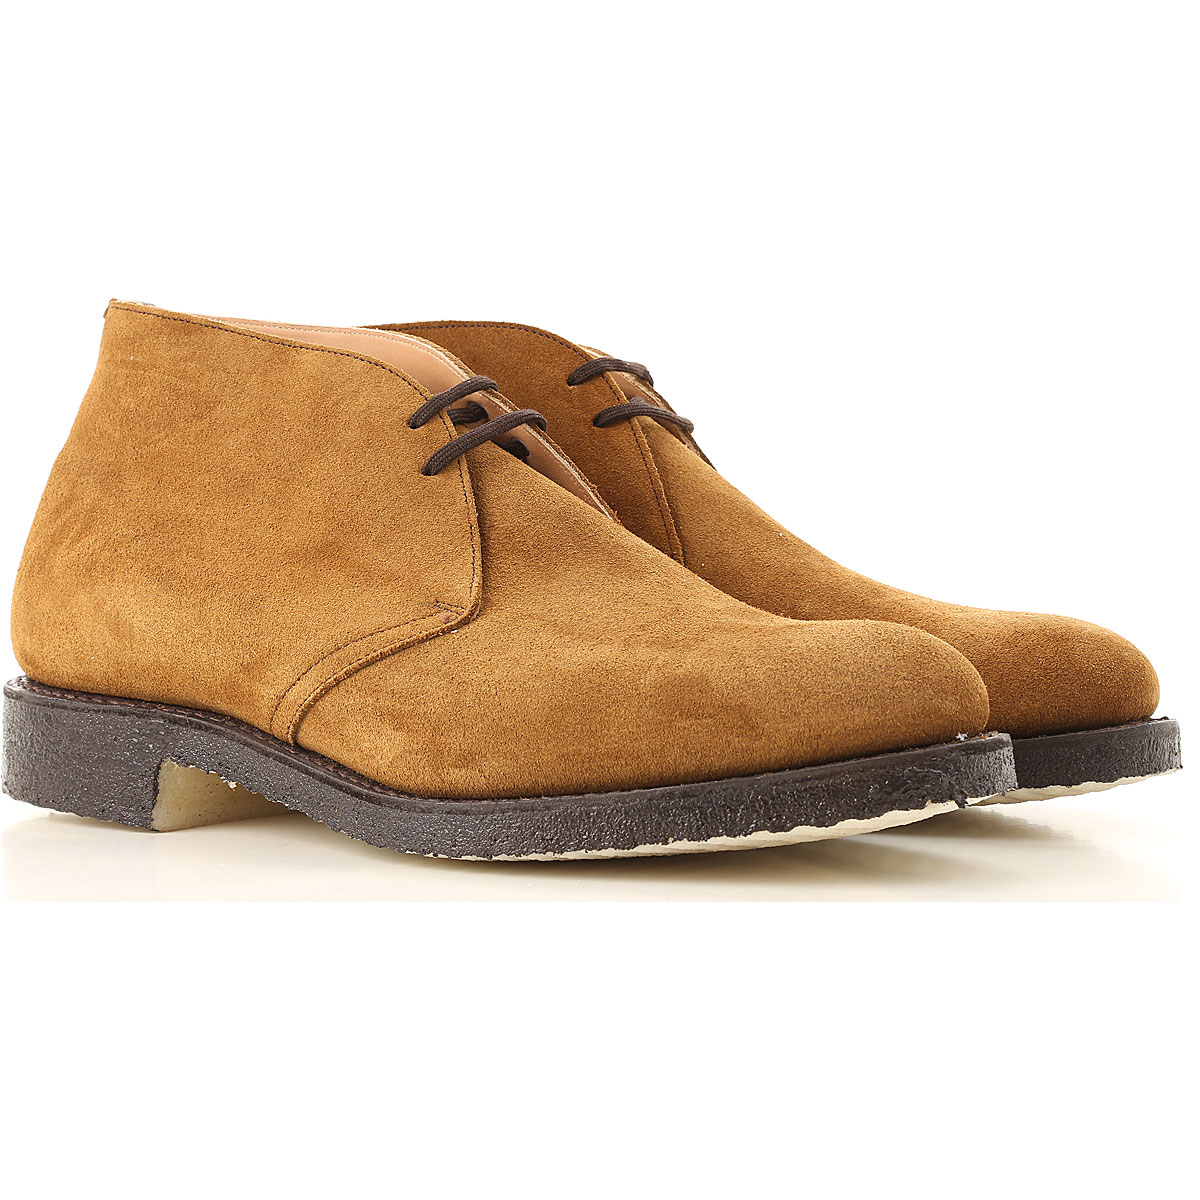 Image of Church's Boots for Men, Booties, Maracca, suede, 2017, 10 10.5 11 8 8.5 9 9.5